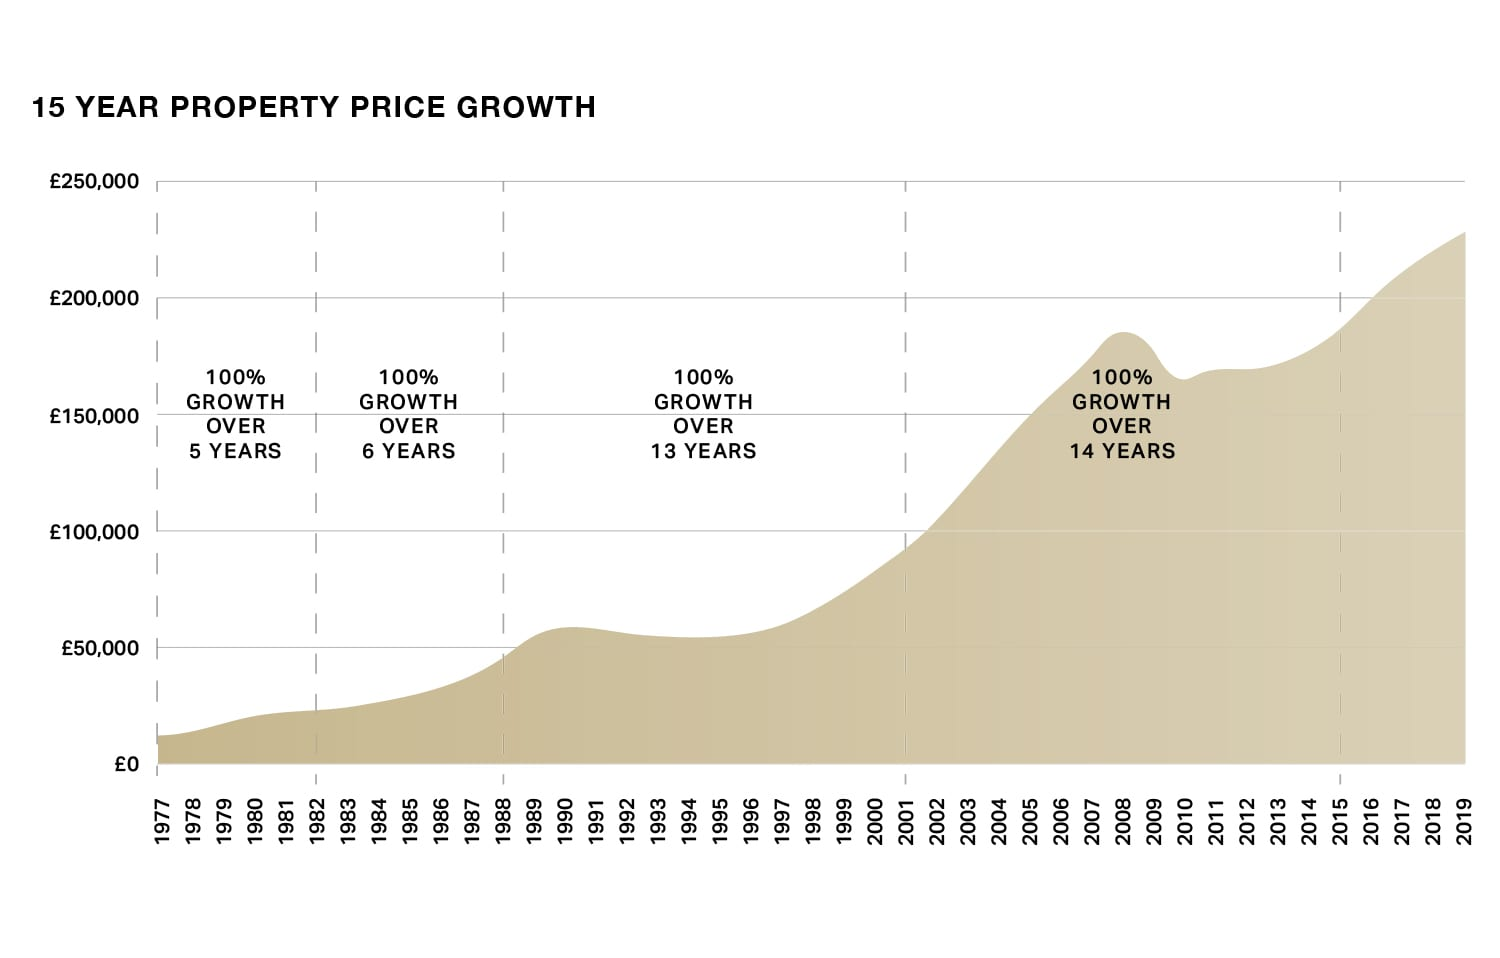 15 year property price growth UK buy-to-let